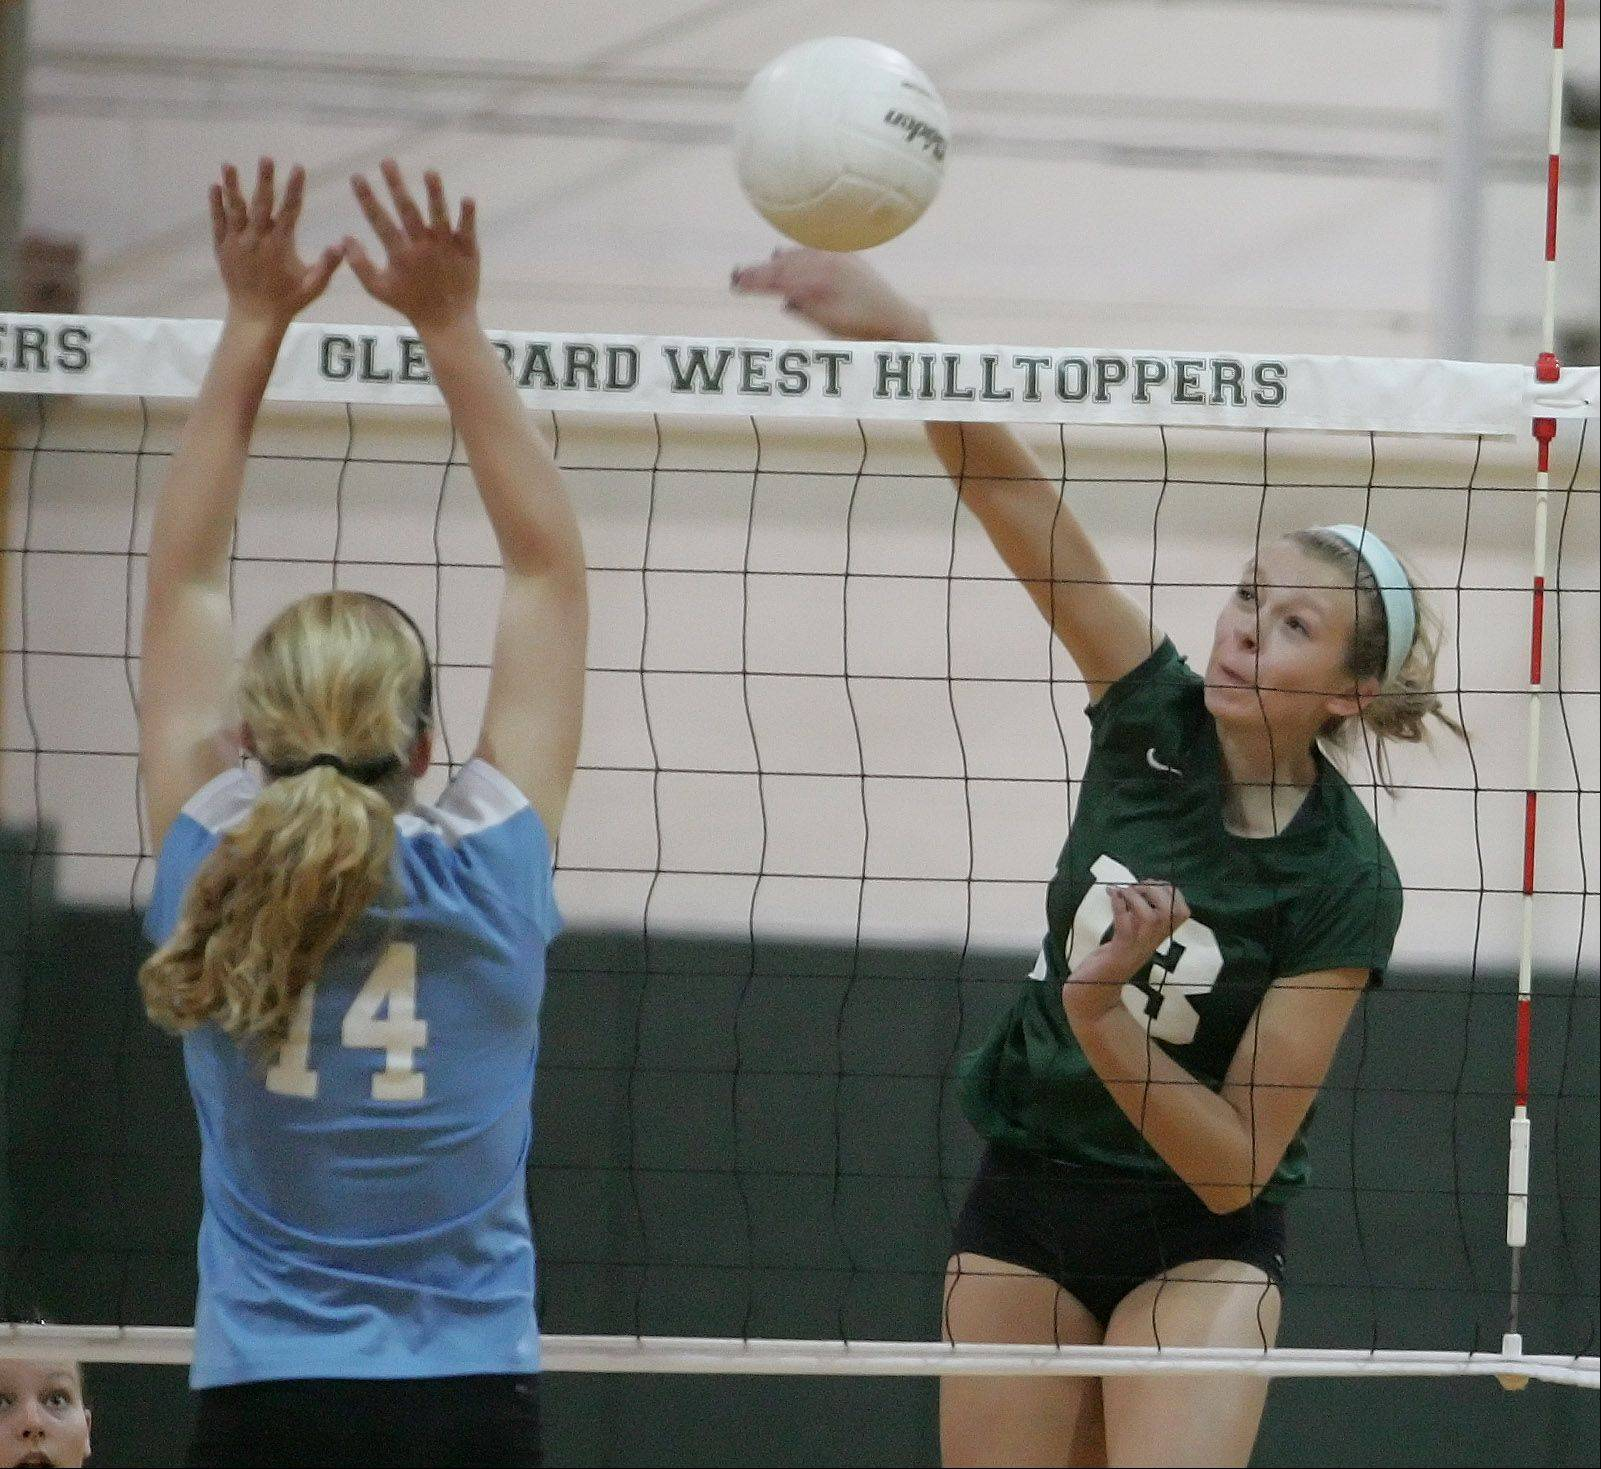 Megan Wagner of Glenbard West spikes the ball as Lauren Carroll of Willowbrook goes up to block in girls volleyball action on Monday in Glen Ellyn.